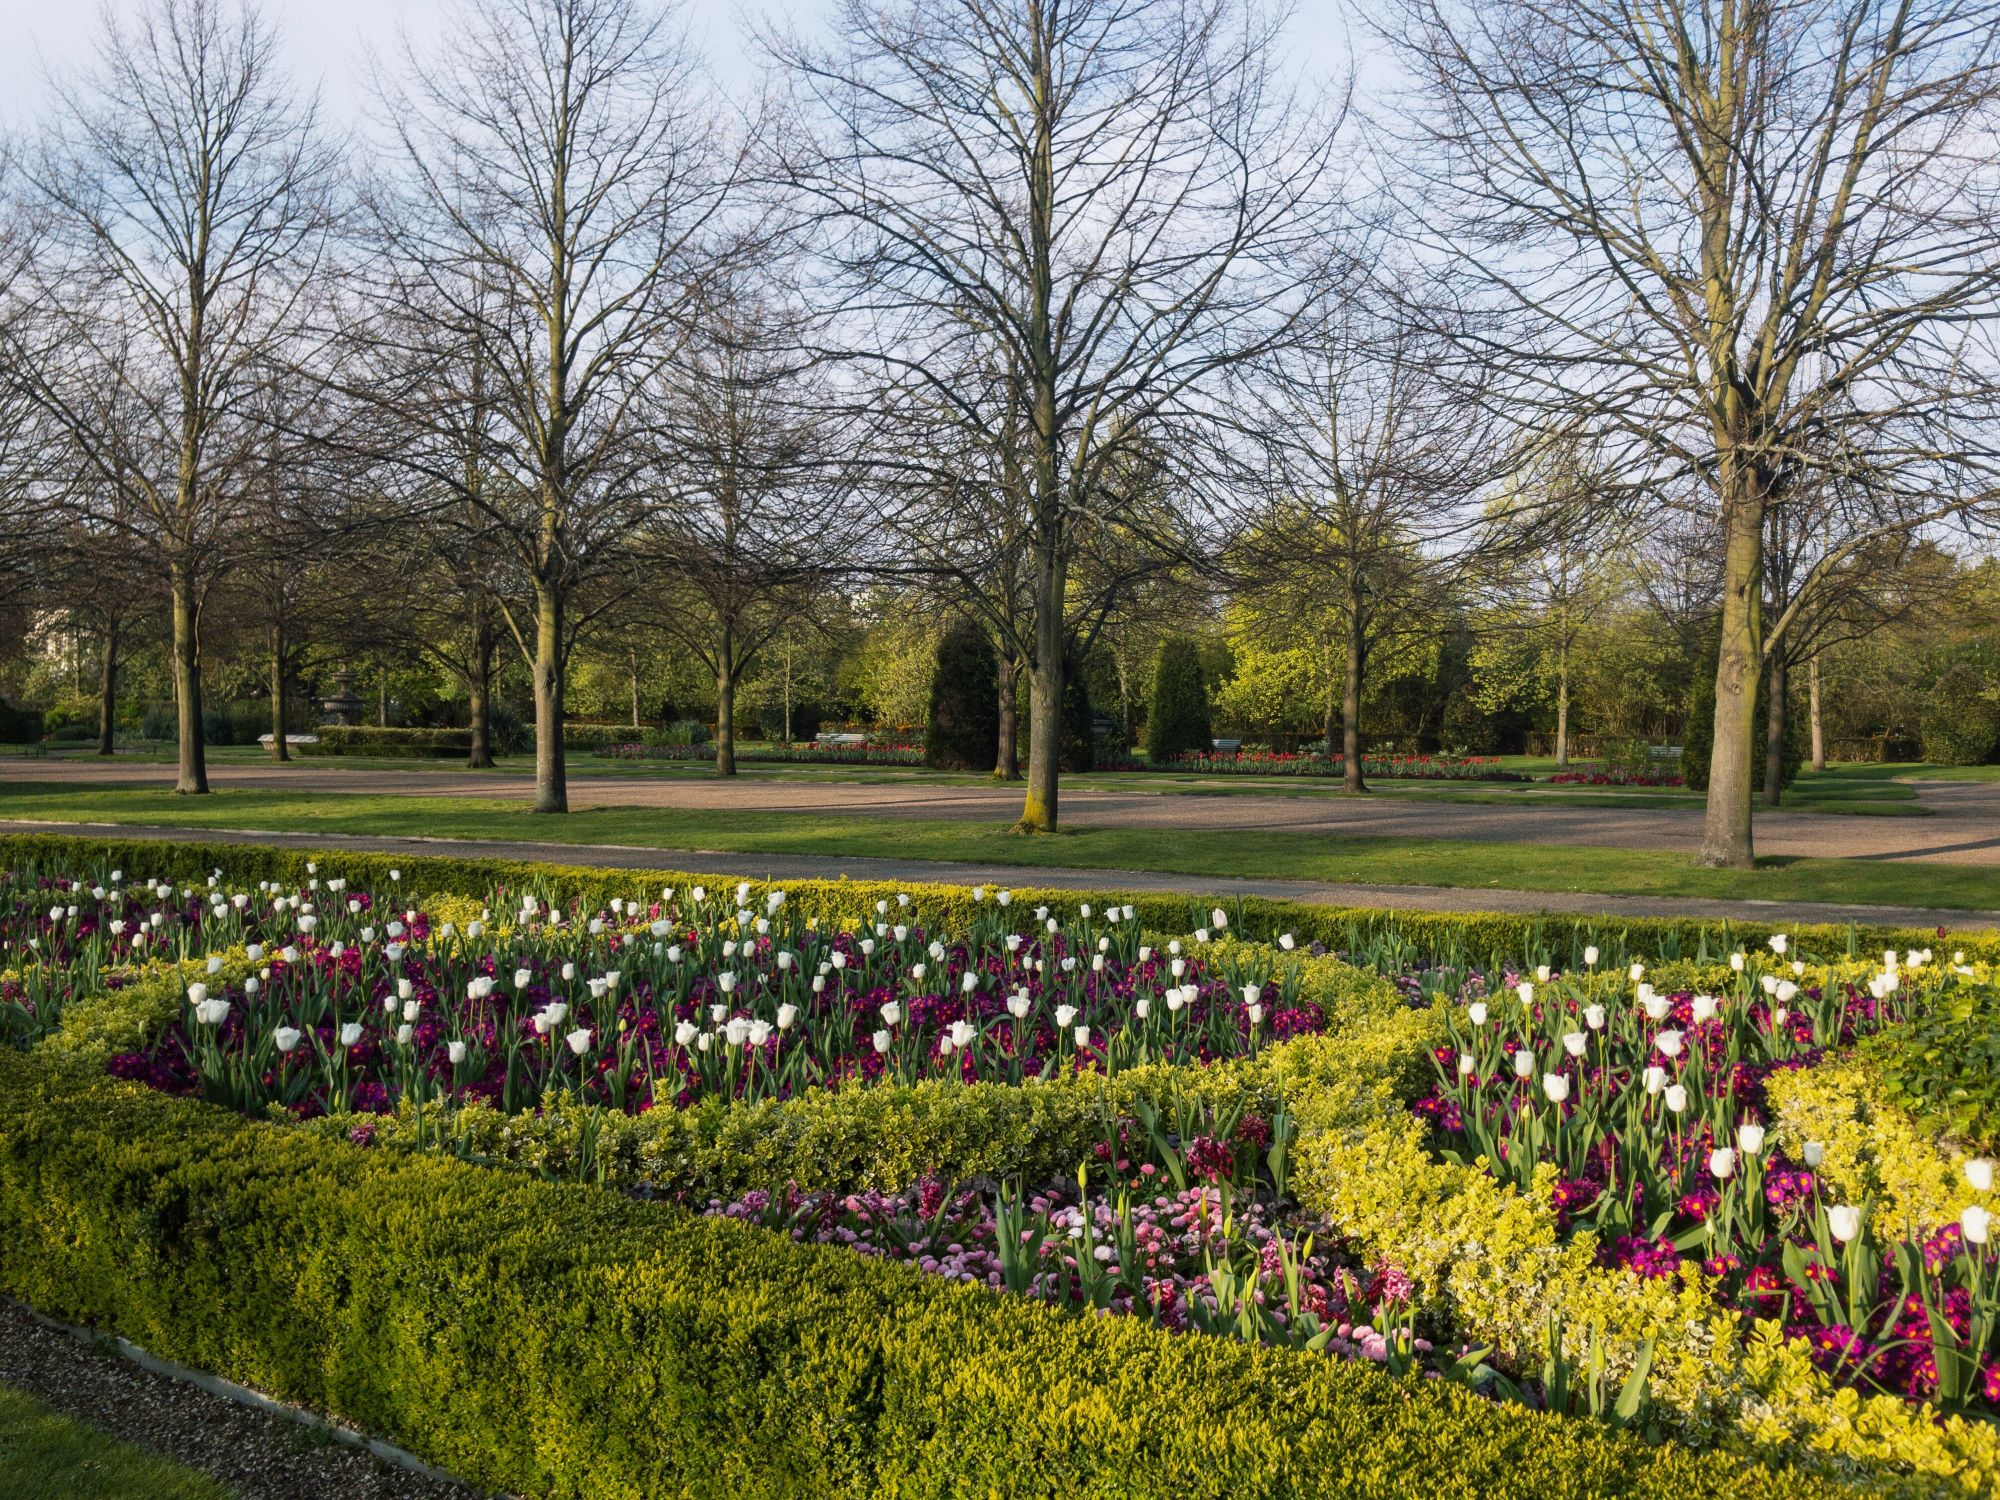 Regents Park Spring Day Flowers.JPG